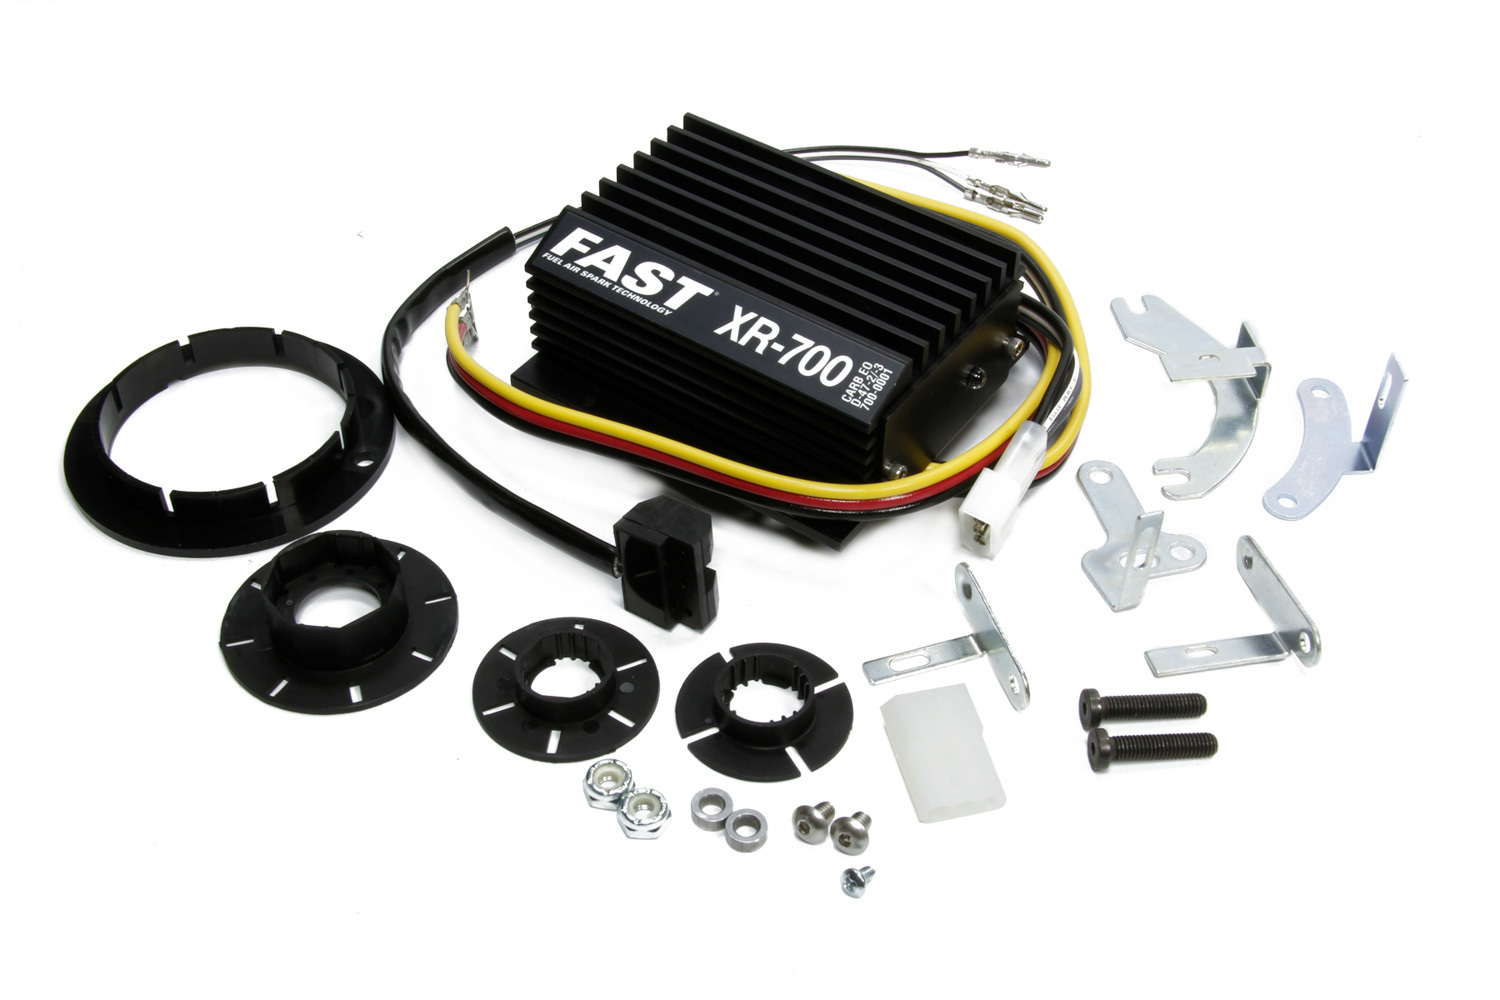 FAST 700-0226 Ignition Conversion Kit, XR700, Points to Electronic, Optical Trigger, Domestic 4 / 6 / 8-Cylinder / VW / Bosch 009 Distributor, Kit